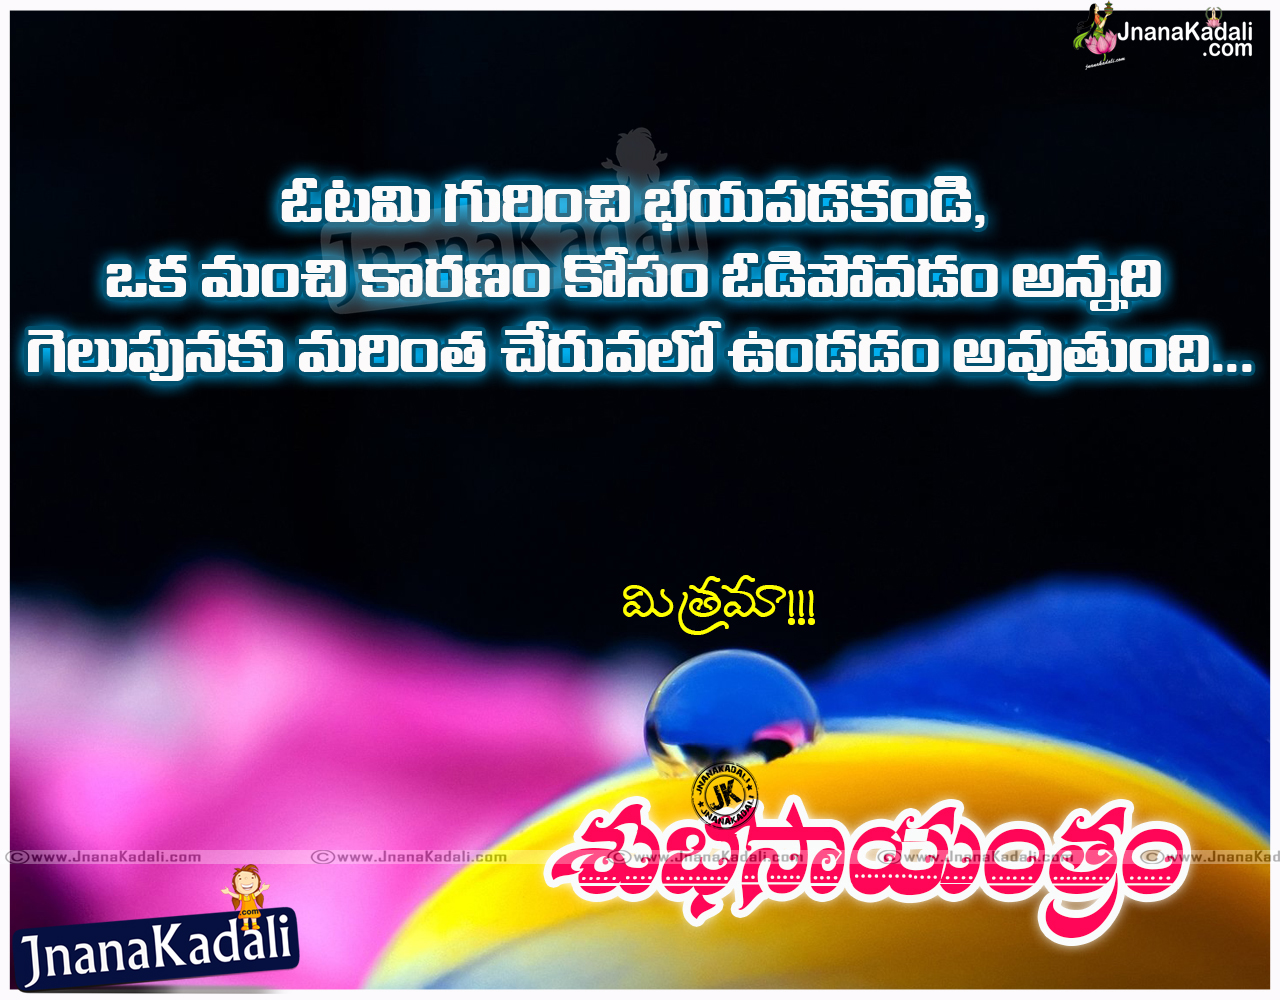 Telugu Good Evening Wishes Greetings Sms Quotations Online Jnana